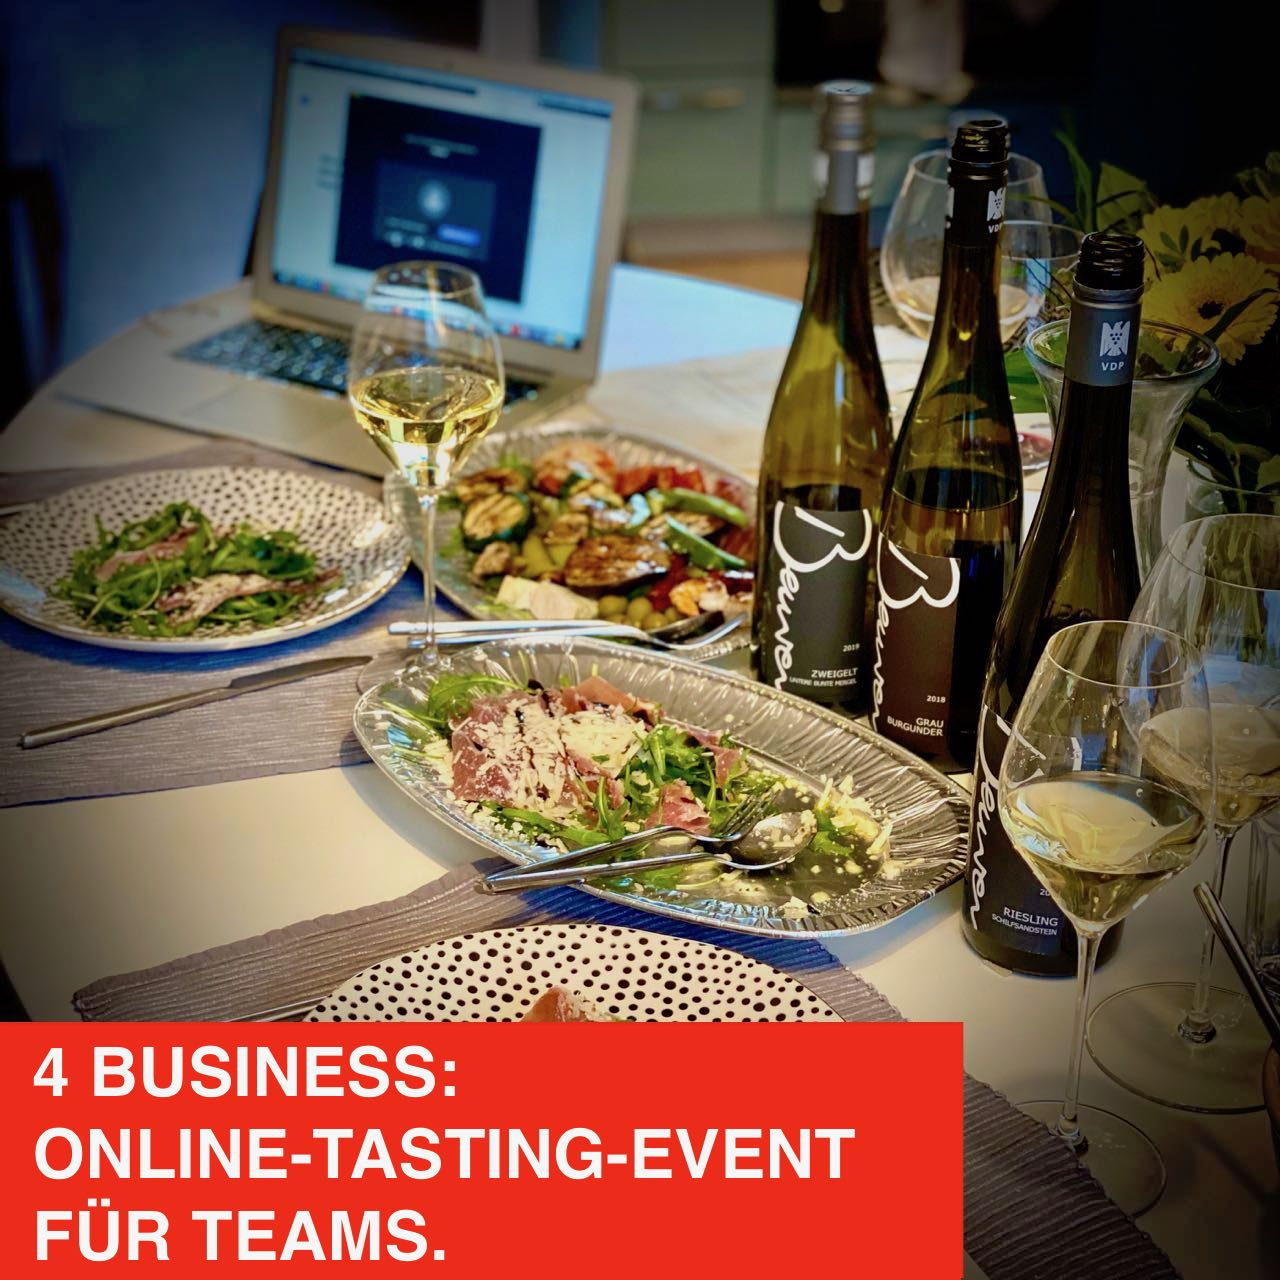 4 BUSINESS: -PRIVAT-EVENT- Online Tasting für Teams. Netto-Preis p.P.